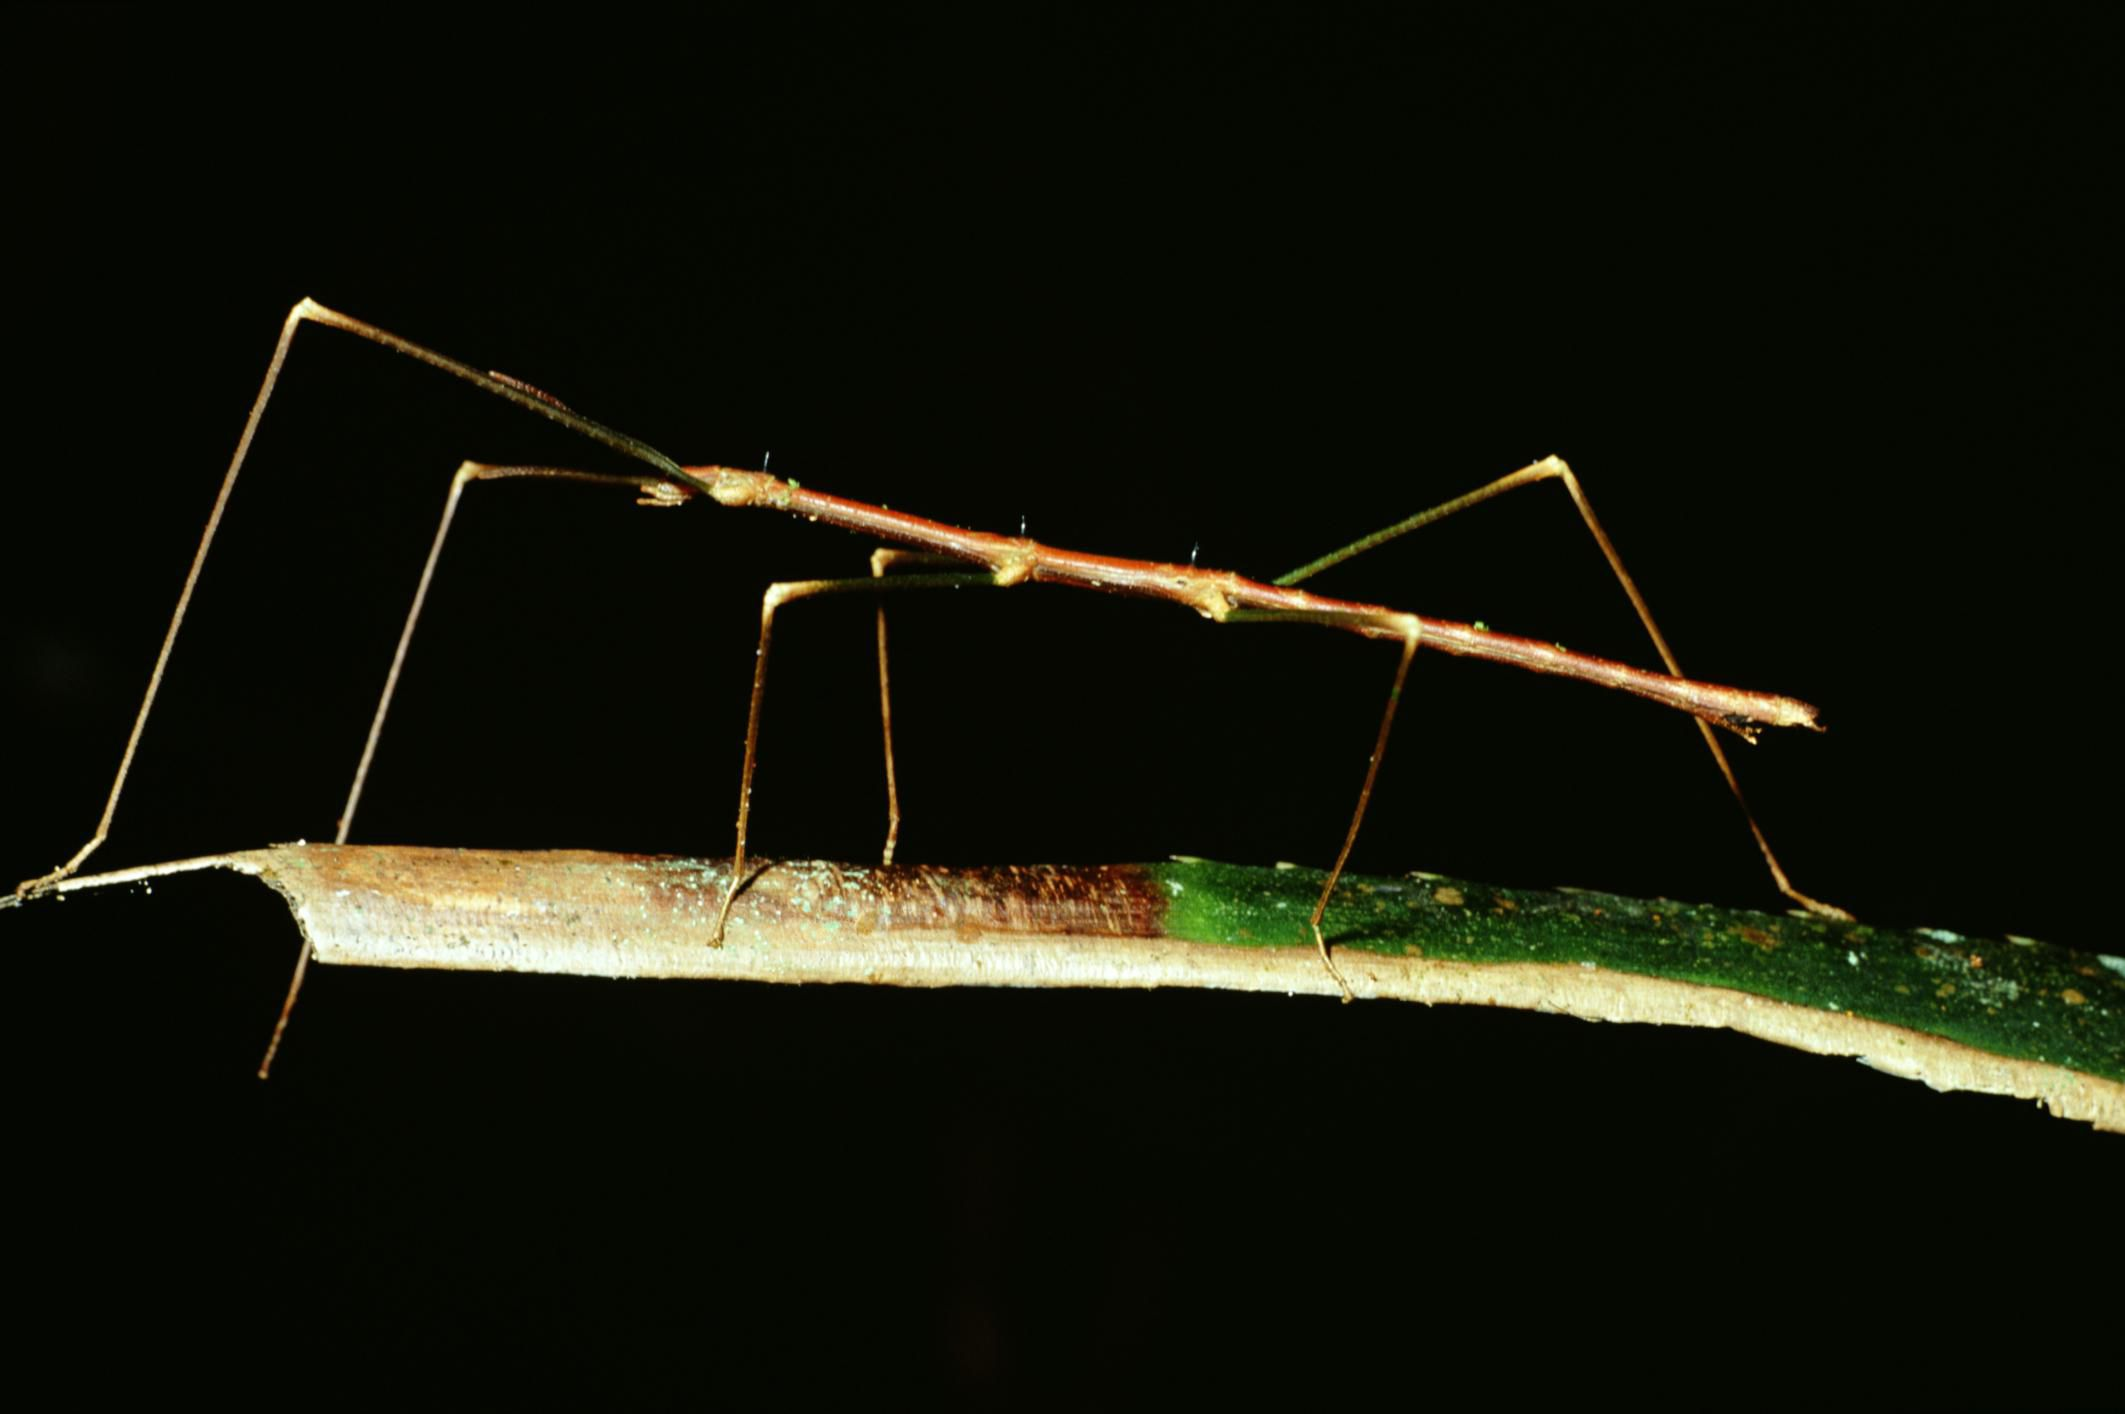 10 Fascinating Facts About Stick Insects